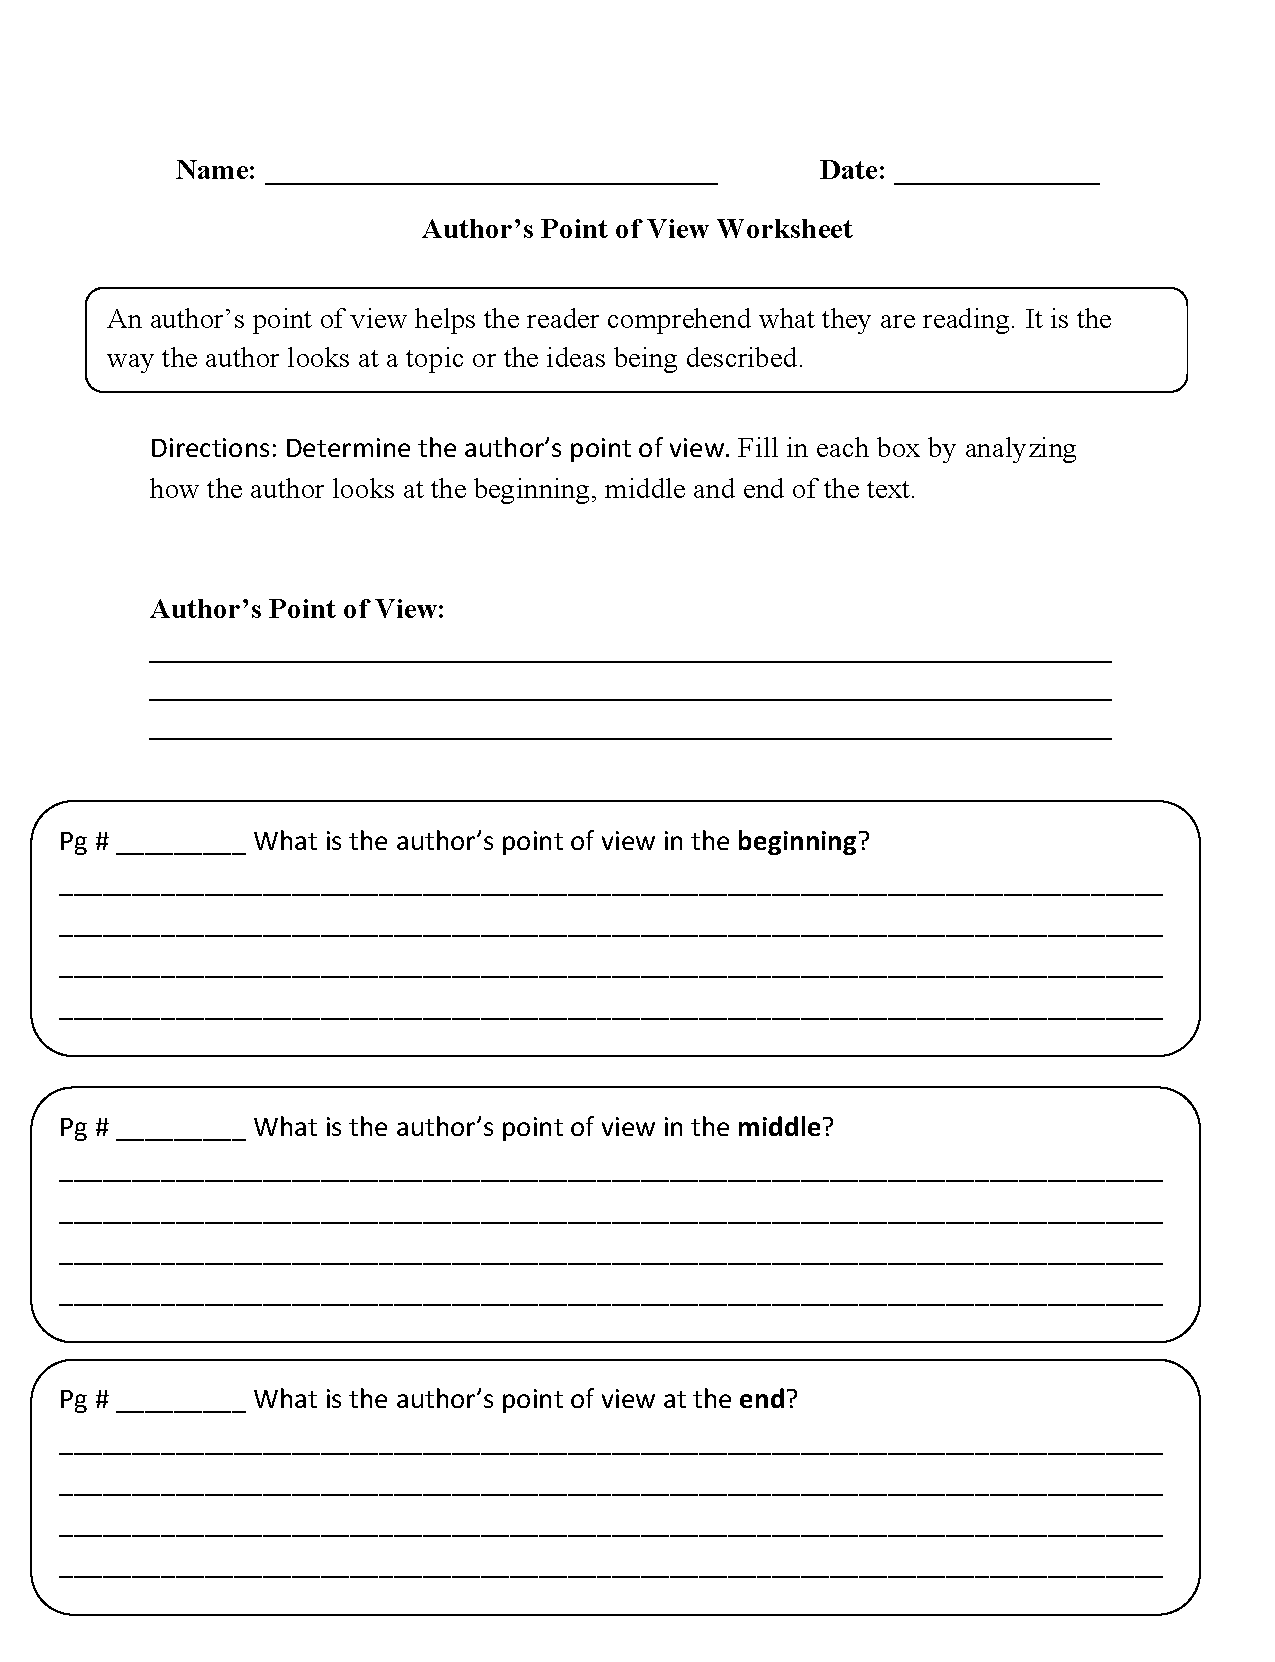 Weirdmailus  Gorgeous Englishlinxcom  Point Of View Worksheets With Lovable Point Of View Worksheets With Attractive Relating Multiplication And Division Worksheets Also Printable Worksheets For Kindergarten And First Grade In Addition Isometric And Orthographic Drawing Worksheets And Rounding Numbers Worksheets Pdf As Well As Kindergarten First Day Of School Worksheets Additionally Great School Worksheets From Englishlinxcom With Weirdmailus  Lovable Englishlinxcom  Point Of View Worksheets With Attractive Point Of View Worksheets And Gorgeous Relating Multiplication And Division Worksheets Also Printable Worksheets For Kindergarten And First Grade In Addition Isometric And Orthographic Drawing Worksheets From Englishlinxcom